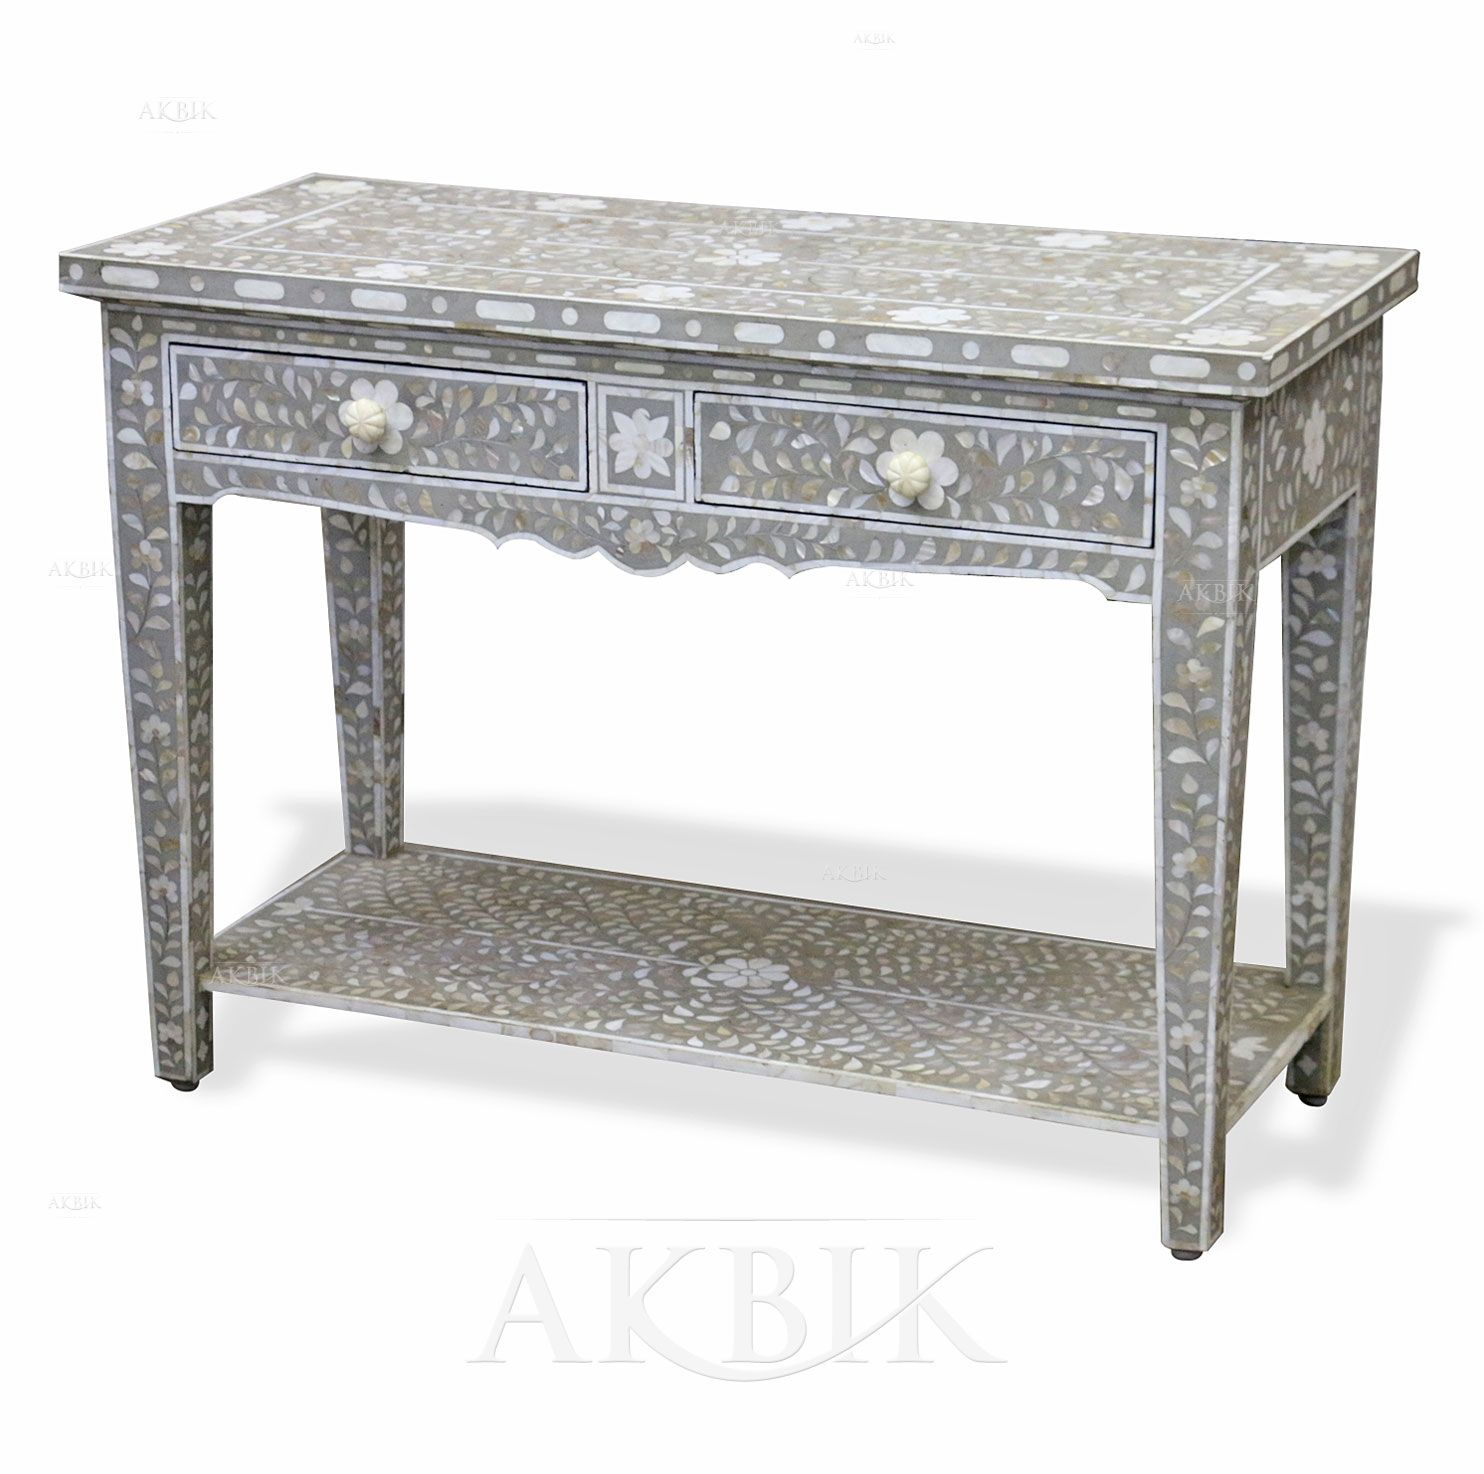 Picture of style no 72641 mother of pearl inlay console table 72641 mother of pearl inlay console table geotapseo Image collections